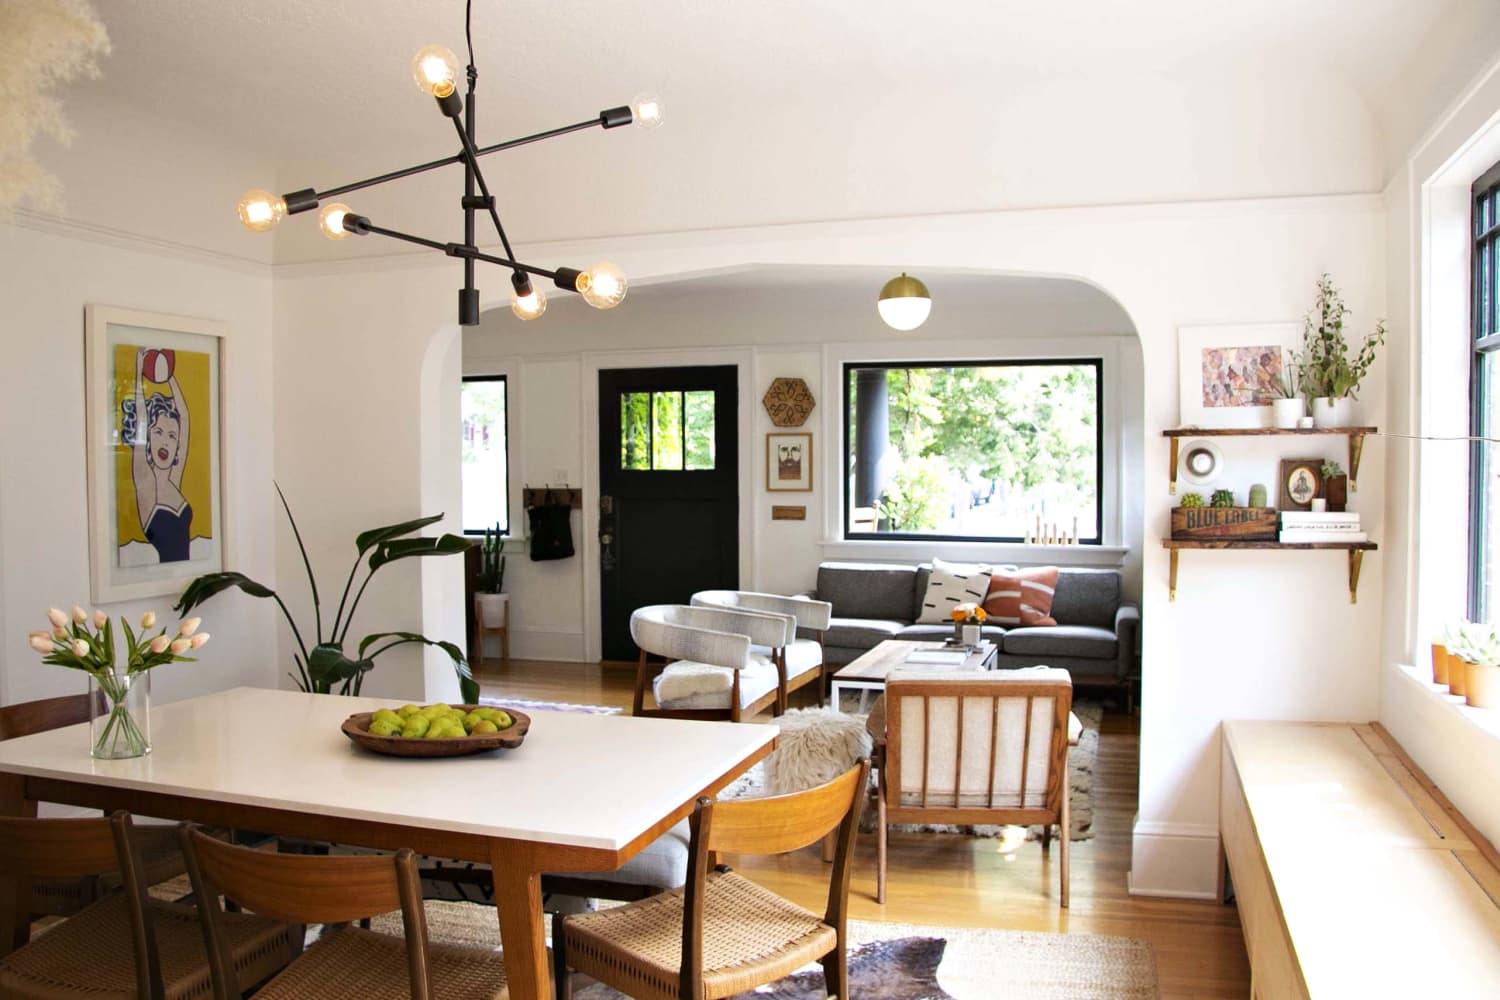 4 Small Things That Can Have a Huge Impact on Your Home's Value